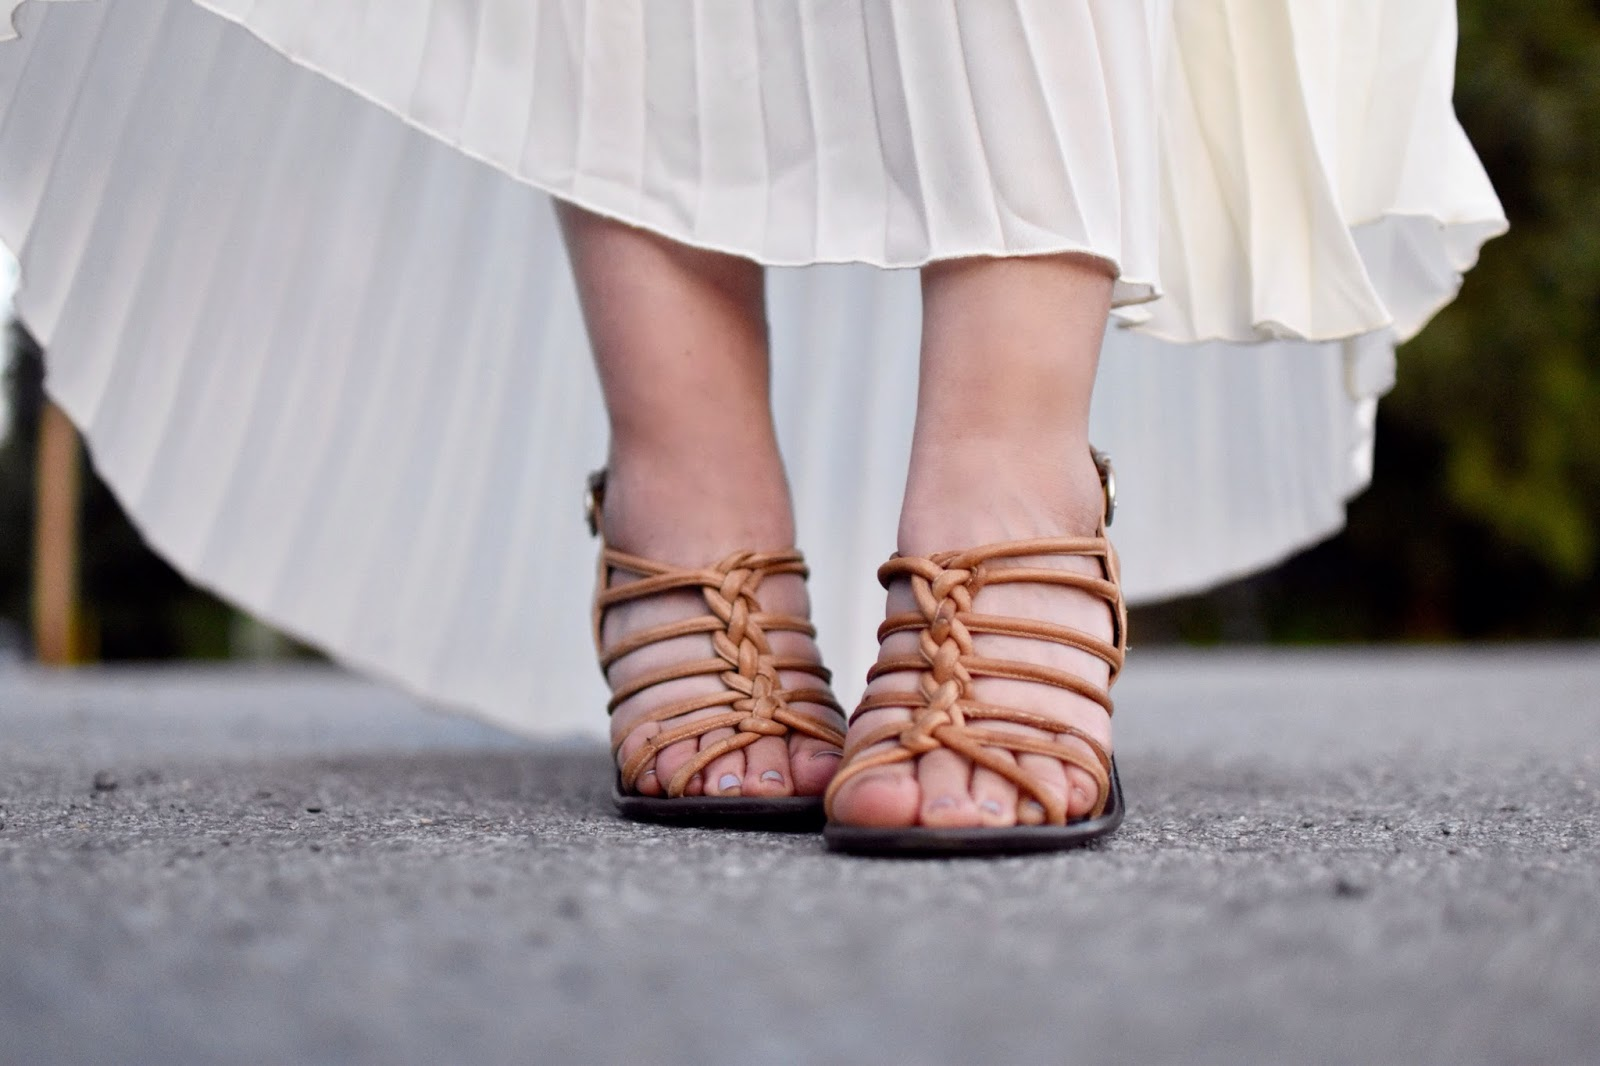 Monika Faulkner personal style inspiration - strappy nude sandals, pleated symmetrical skirt